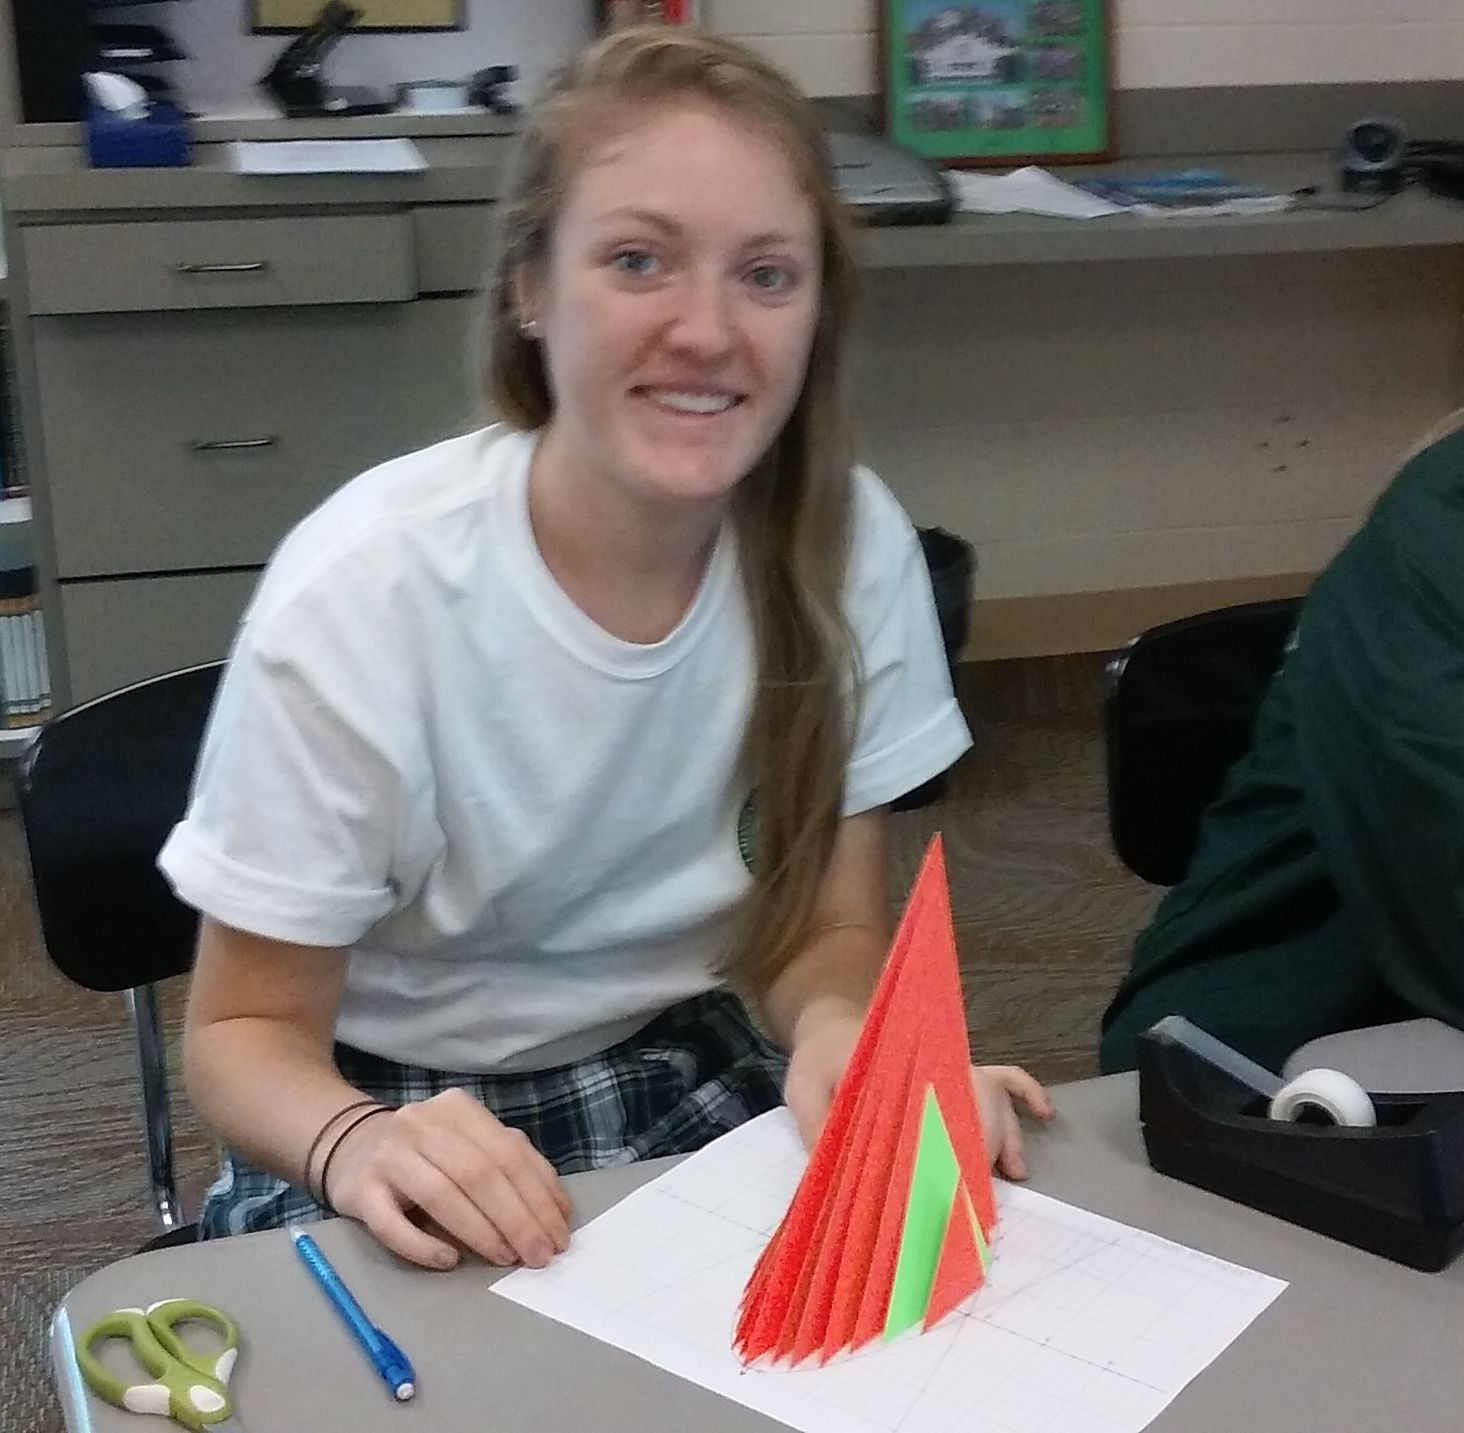 Modeling Solids Of Known Cross Sections